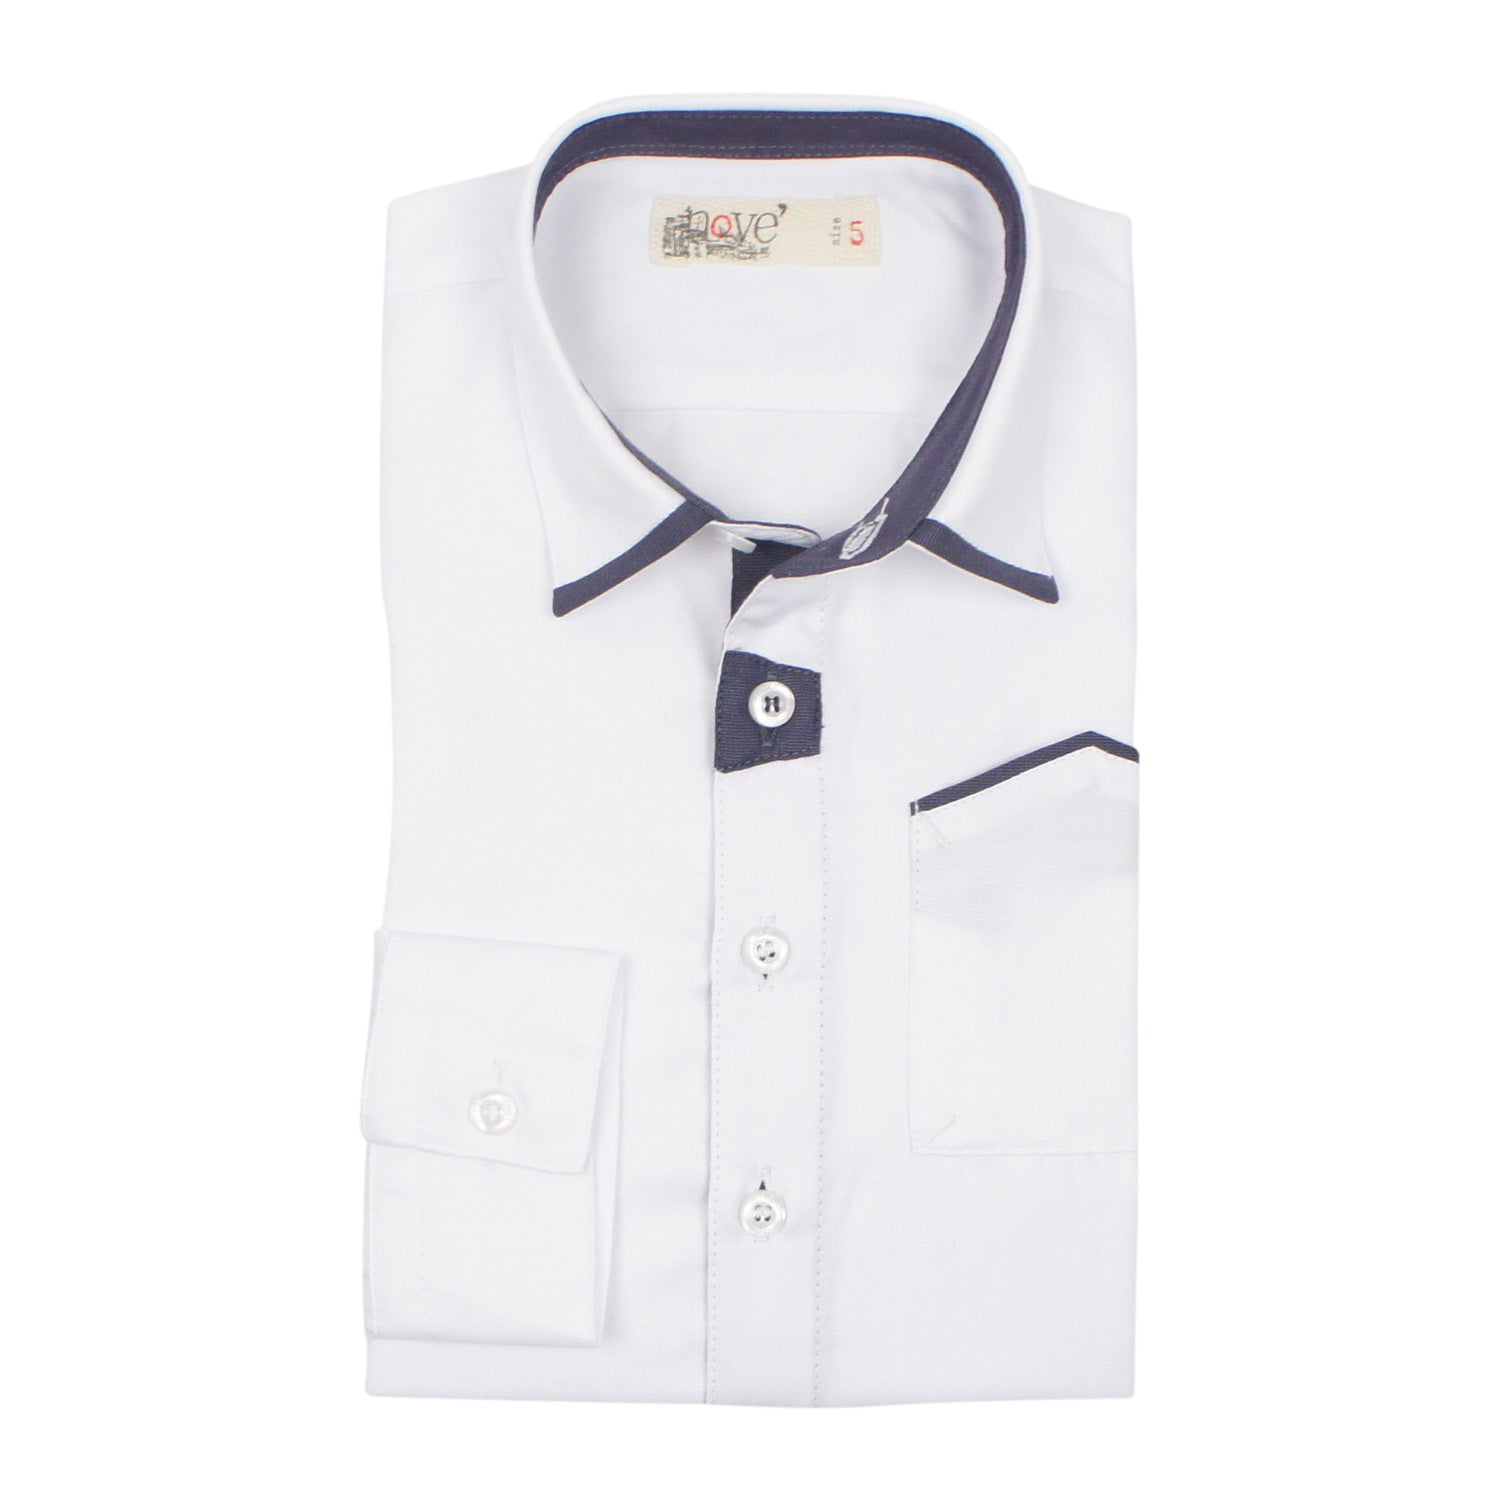 Nove Boys' Grey Accenting Shirt